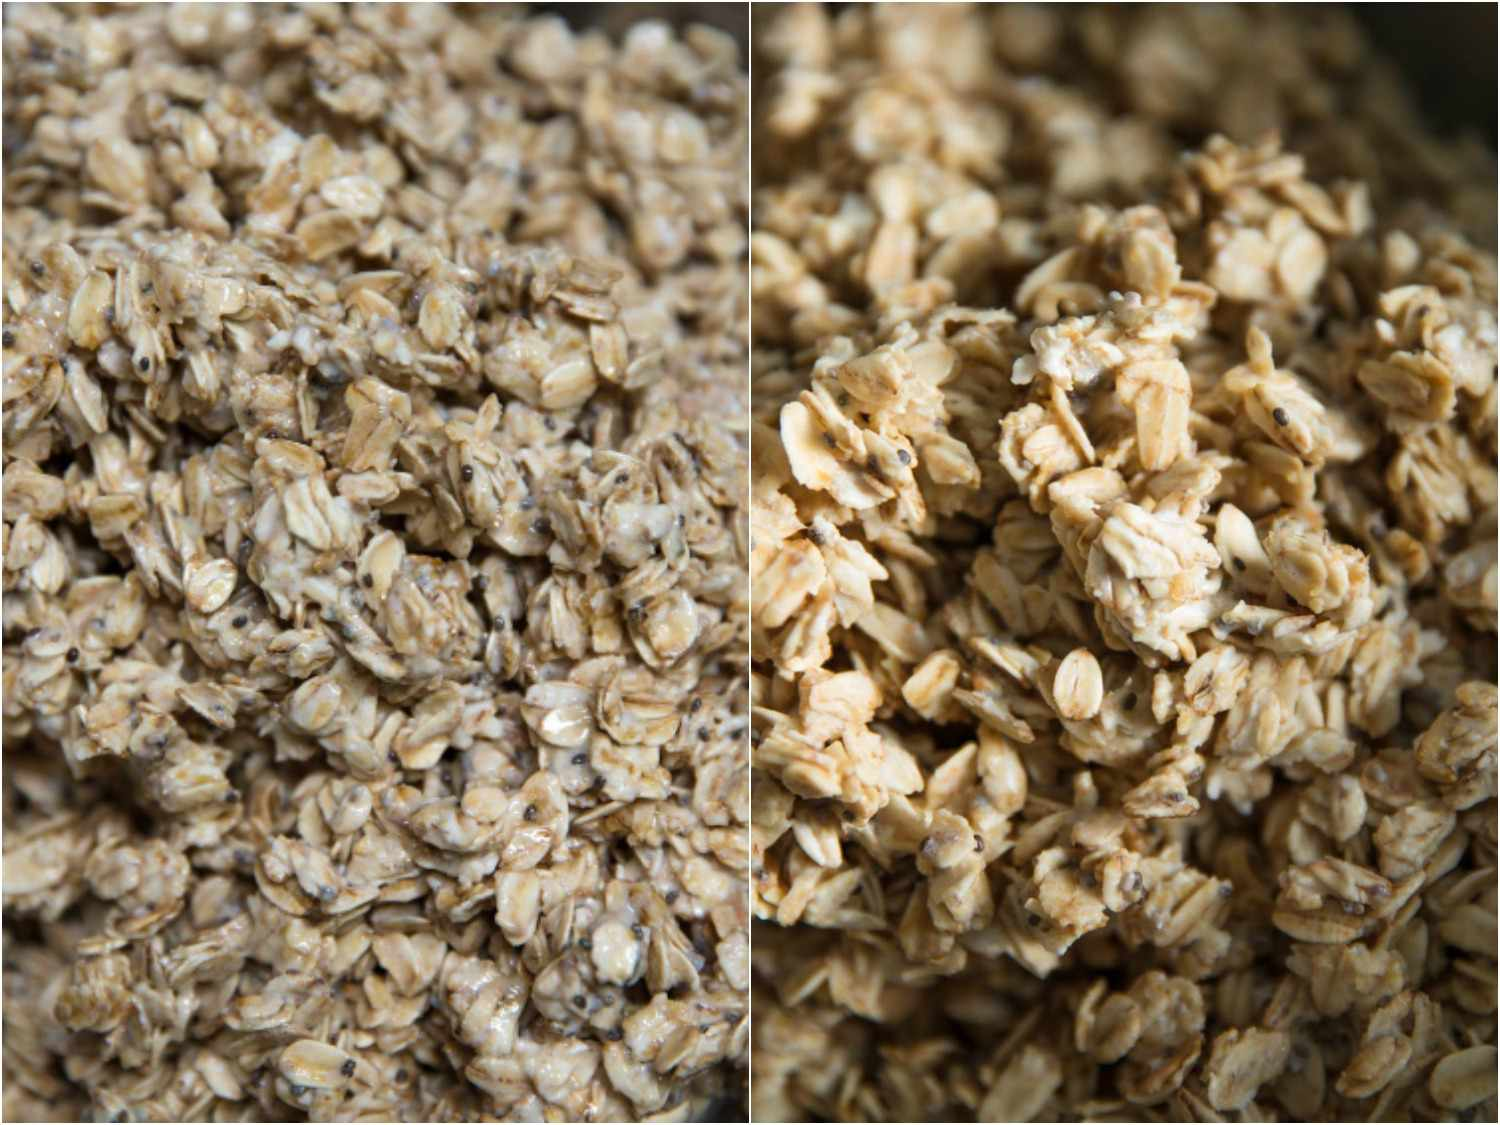 20170524-granola-vicky-wasik-collage-before-after-oats-soaking.jpg